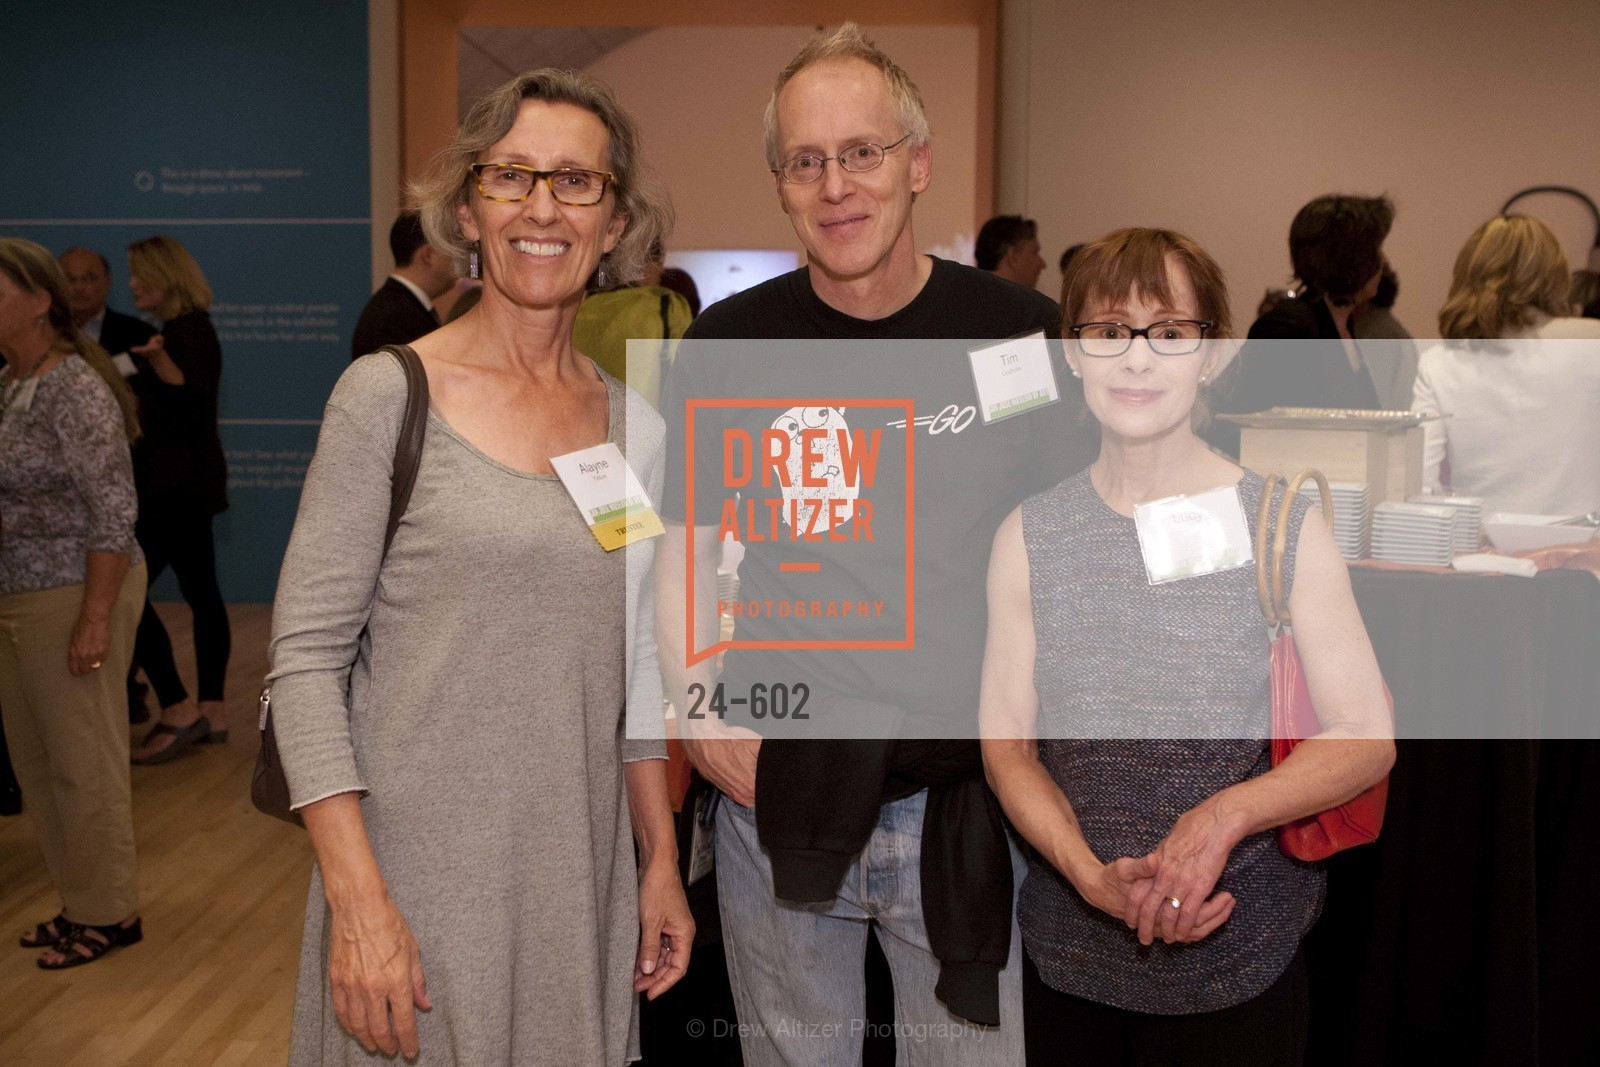 Alayne Yellum, Tim Lindholm, Lucy Gaylord, SAN JOSE MUSEUM OF ART Fall Reception Opening, US, October 9th, 2014